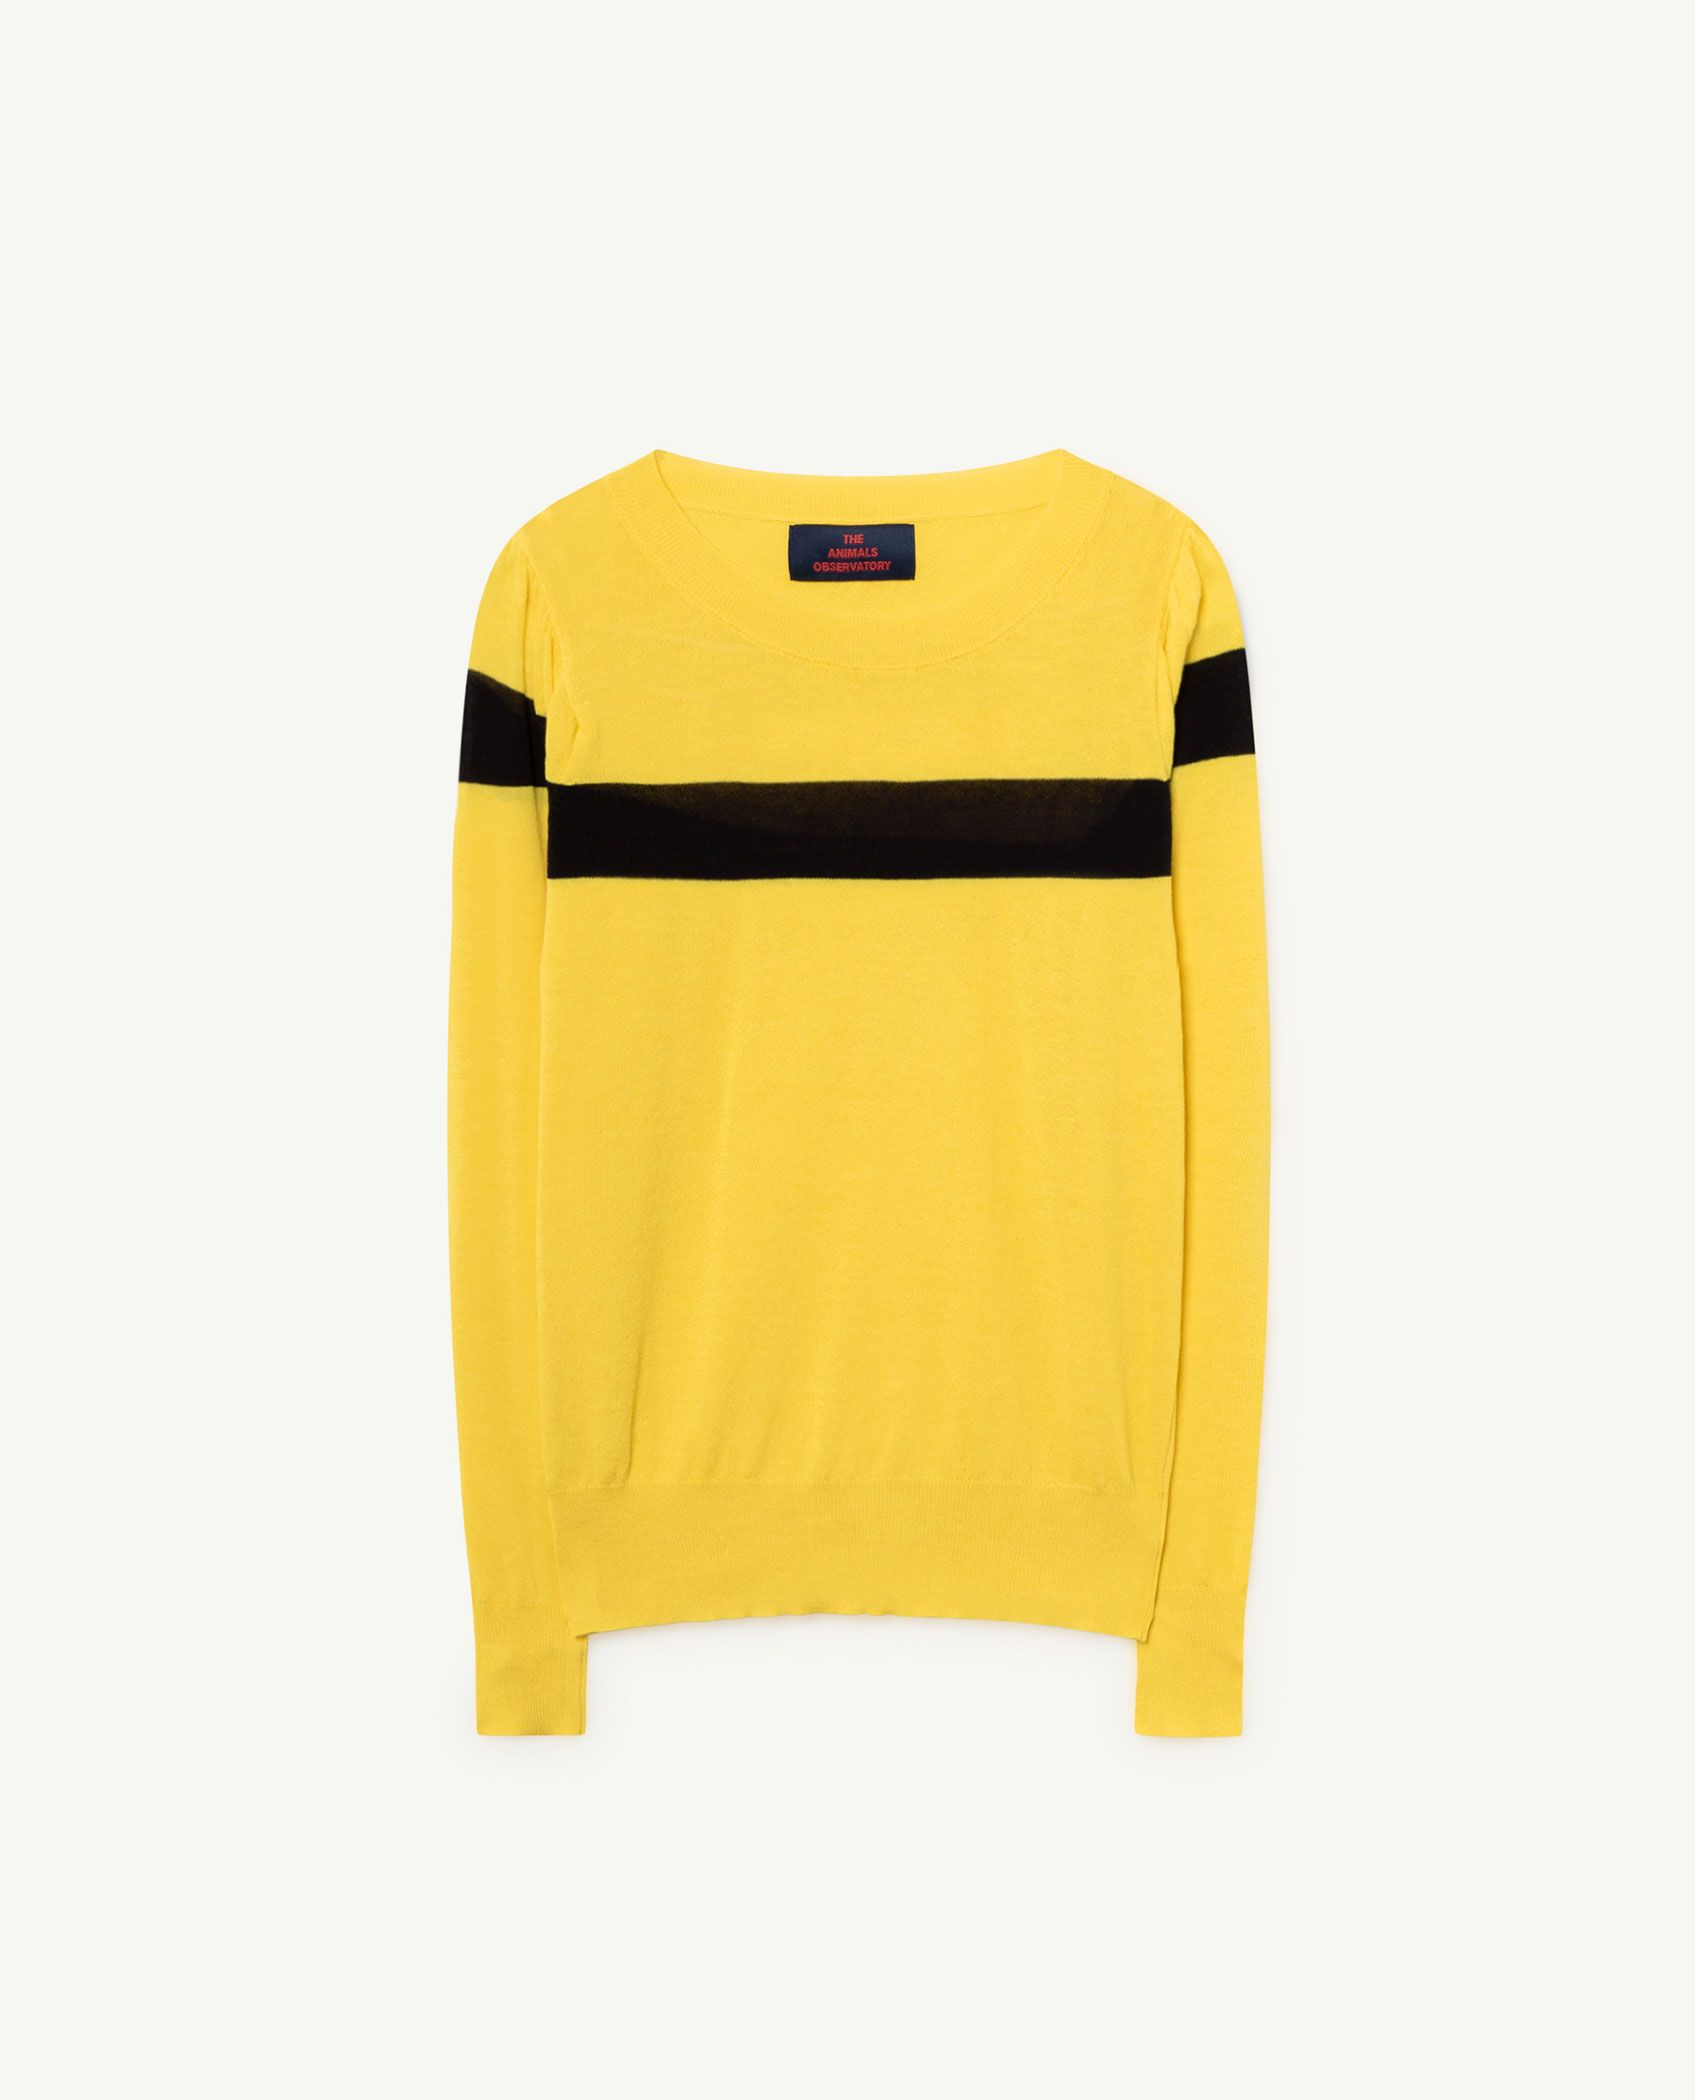 Yellow Condor Sweater img-1